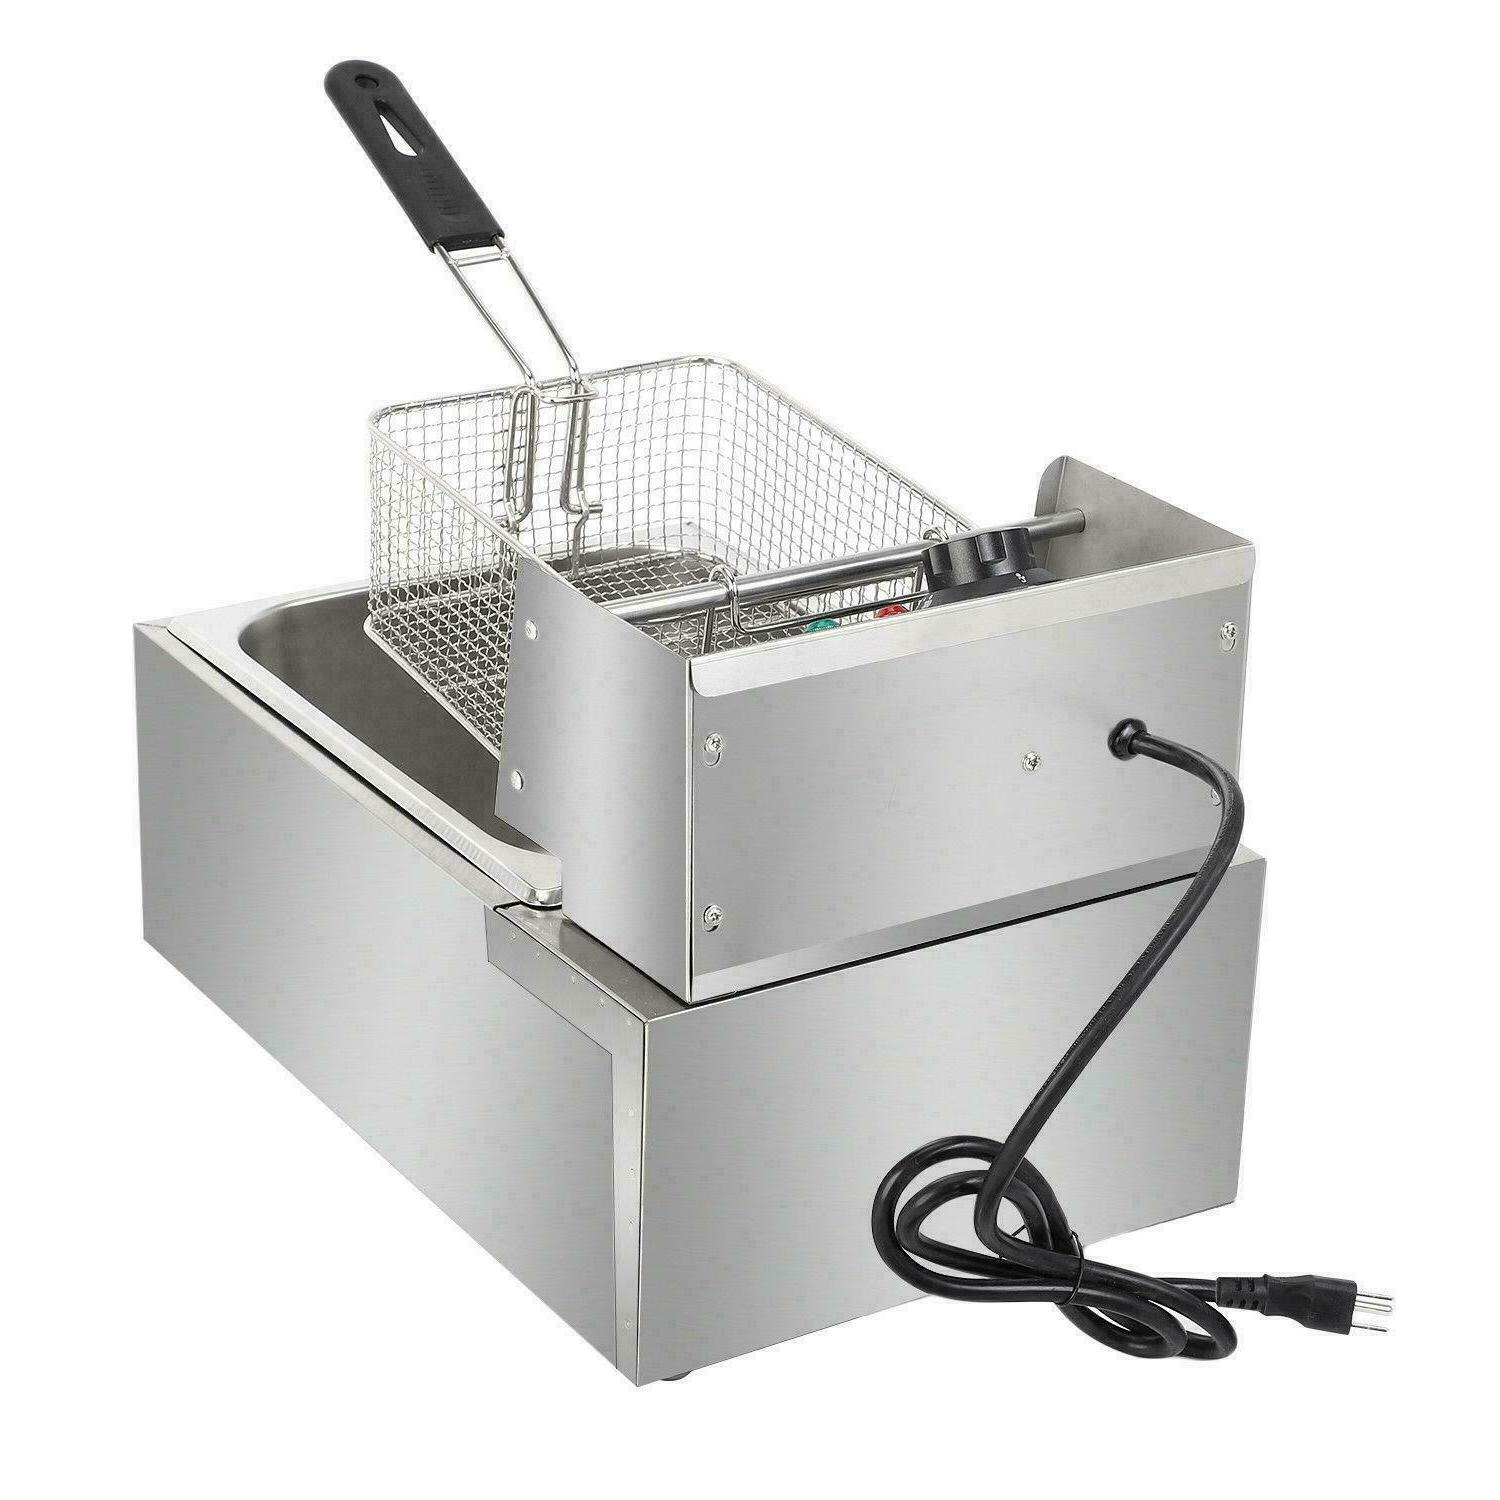 2500W 6.3QT/6L Stainless Electric Deep Fryer Commercial